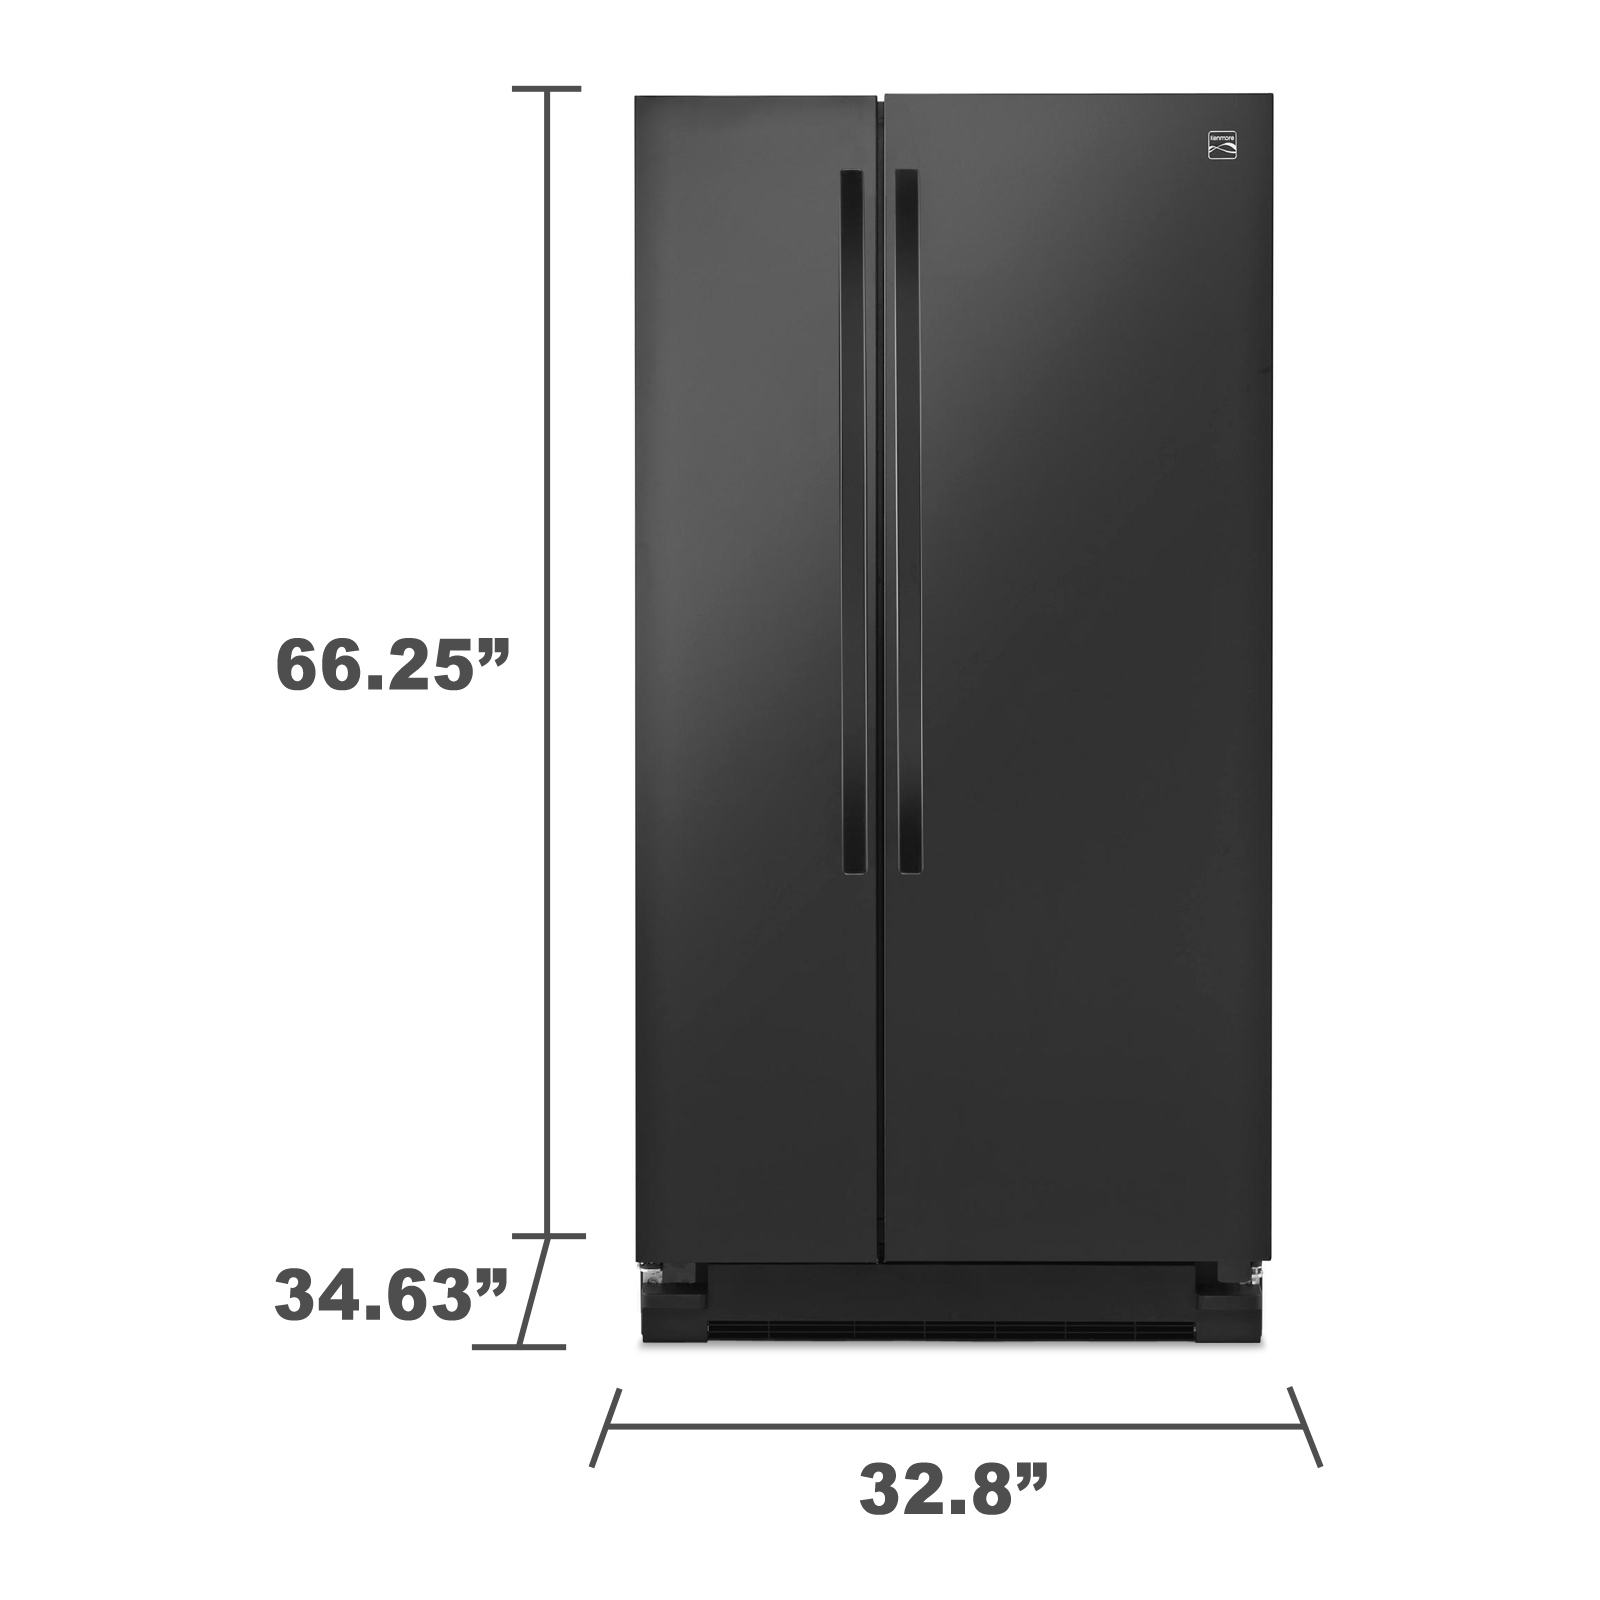 Kenmore 41129 21.5 cu. ft. Side-by-Side Refrigerator - Black